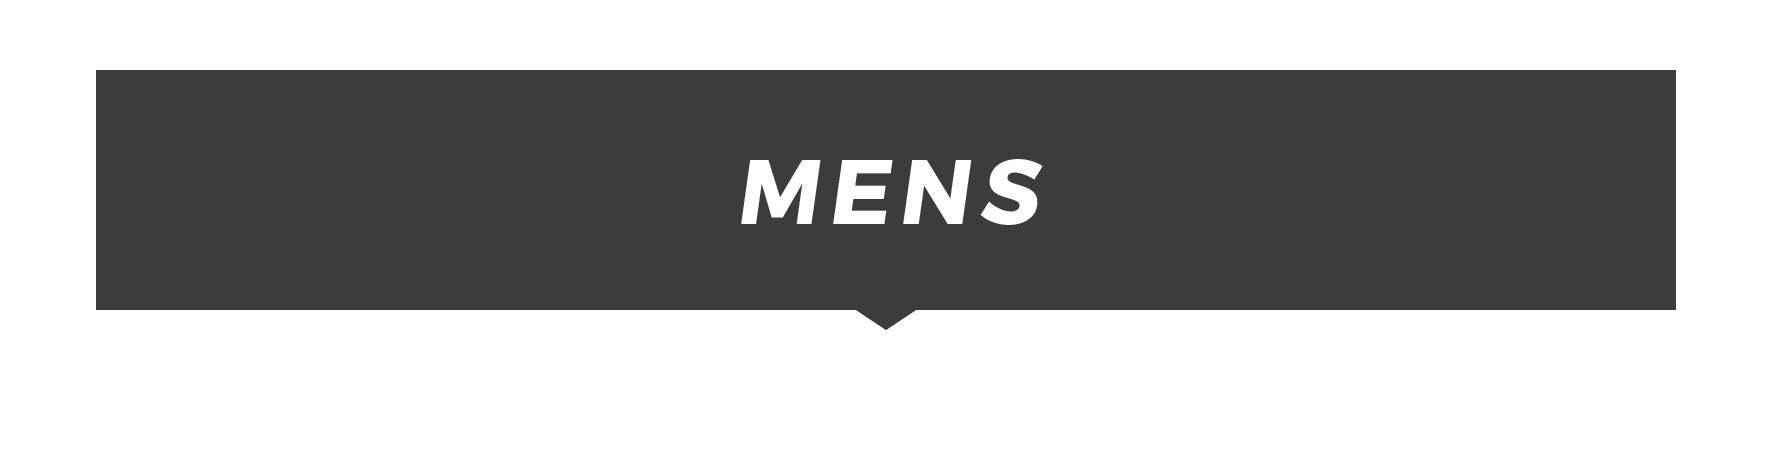 Urban Planet - Men's Size Guides